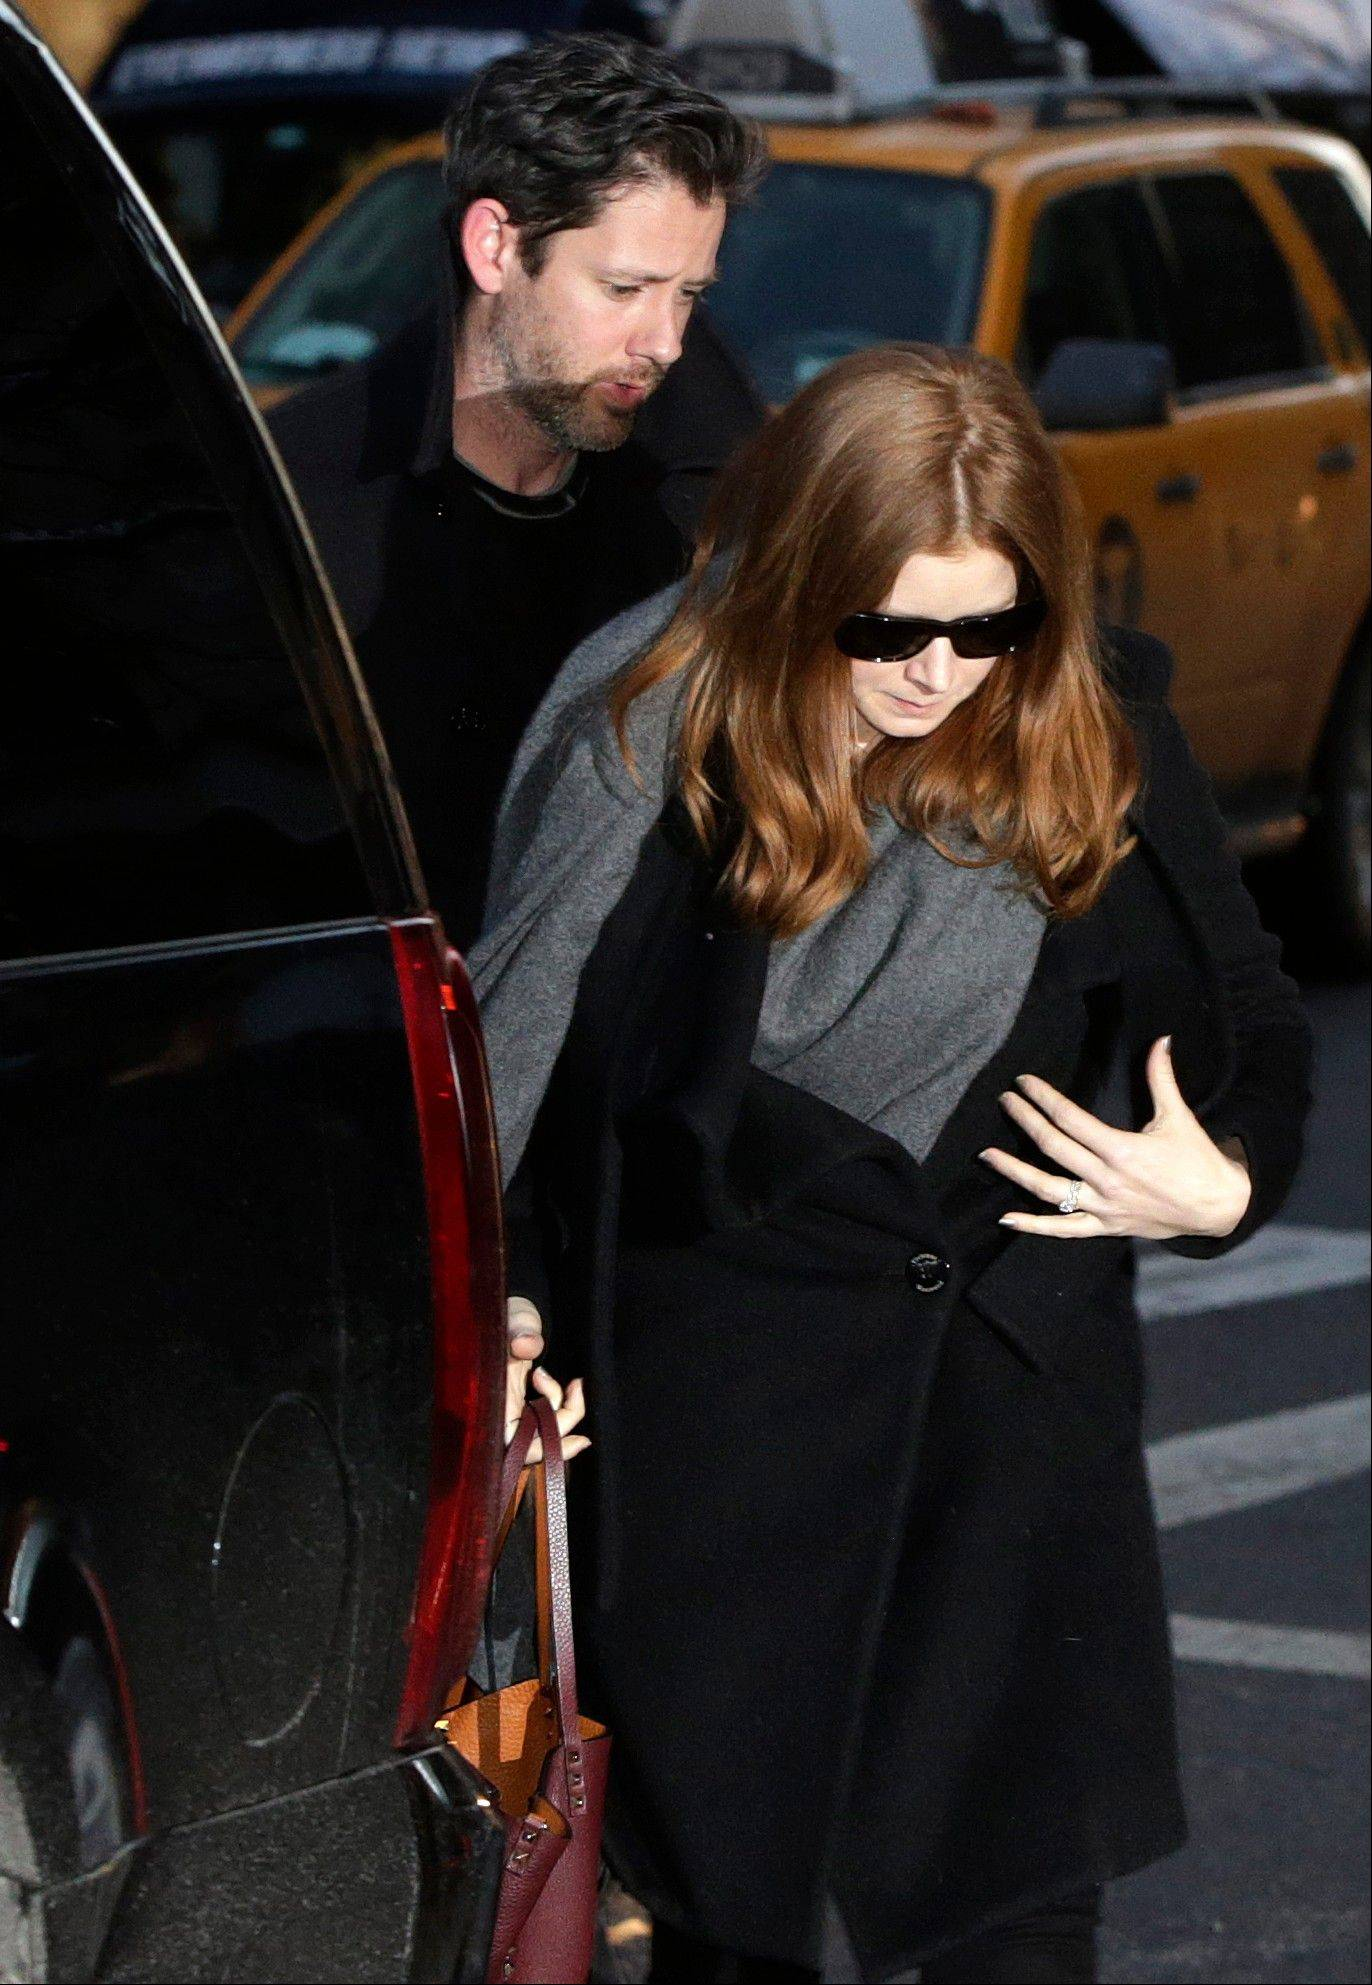 Oscar-nominated actress Amy Adams and her fiance Darren Le Gallo arrive at a wake for actor Philip Seymour Hoffman at the Frank E. Campbell Funeral Home on Manhattan�s Upper East Side, Thursday, Feb. 6, 2014, in New York. Hoffman died Sunday of a suspected drug overdose in his New York apartment.